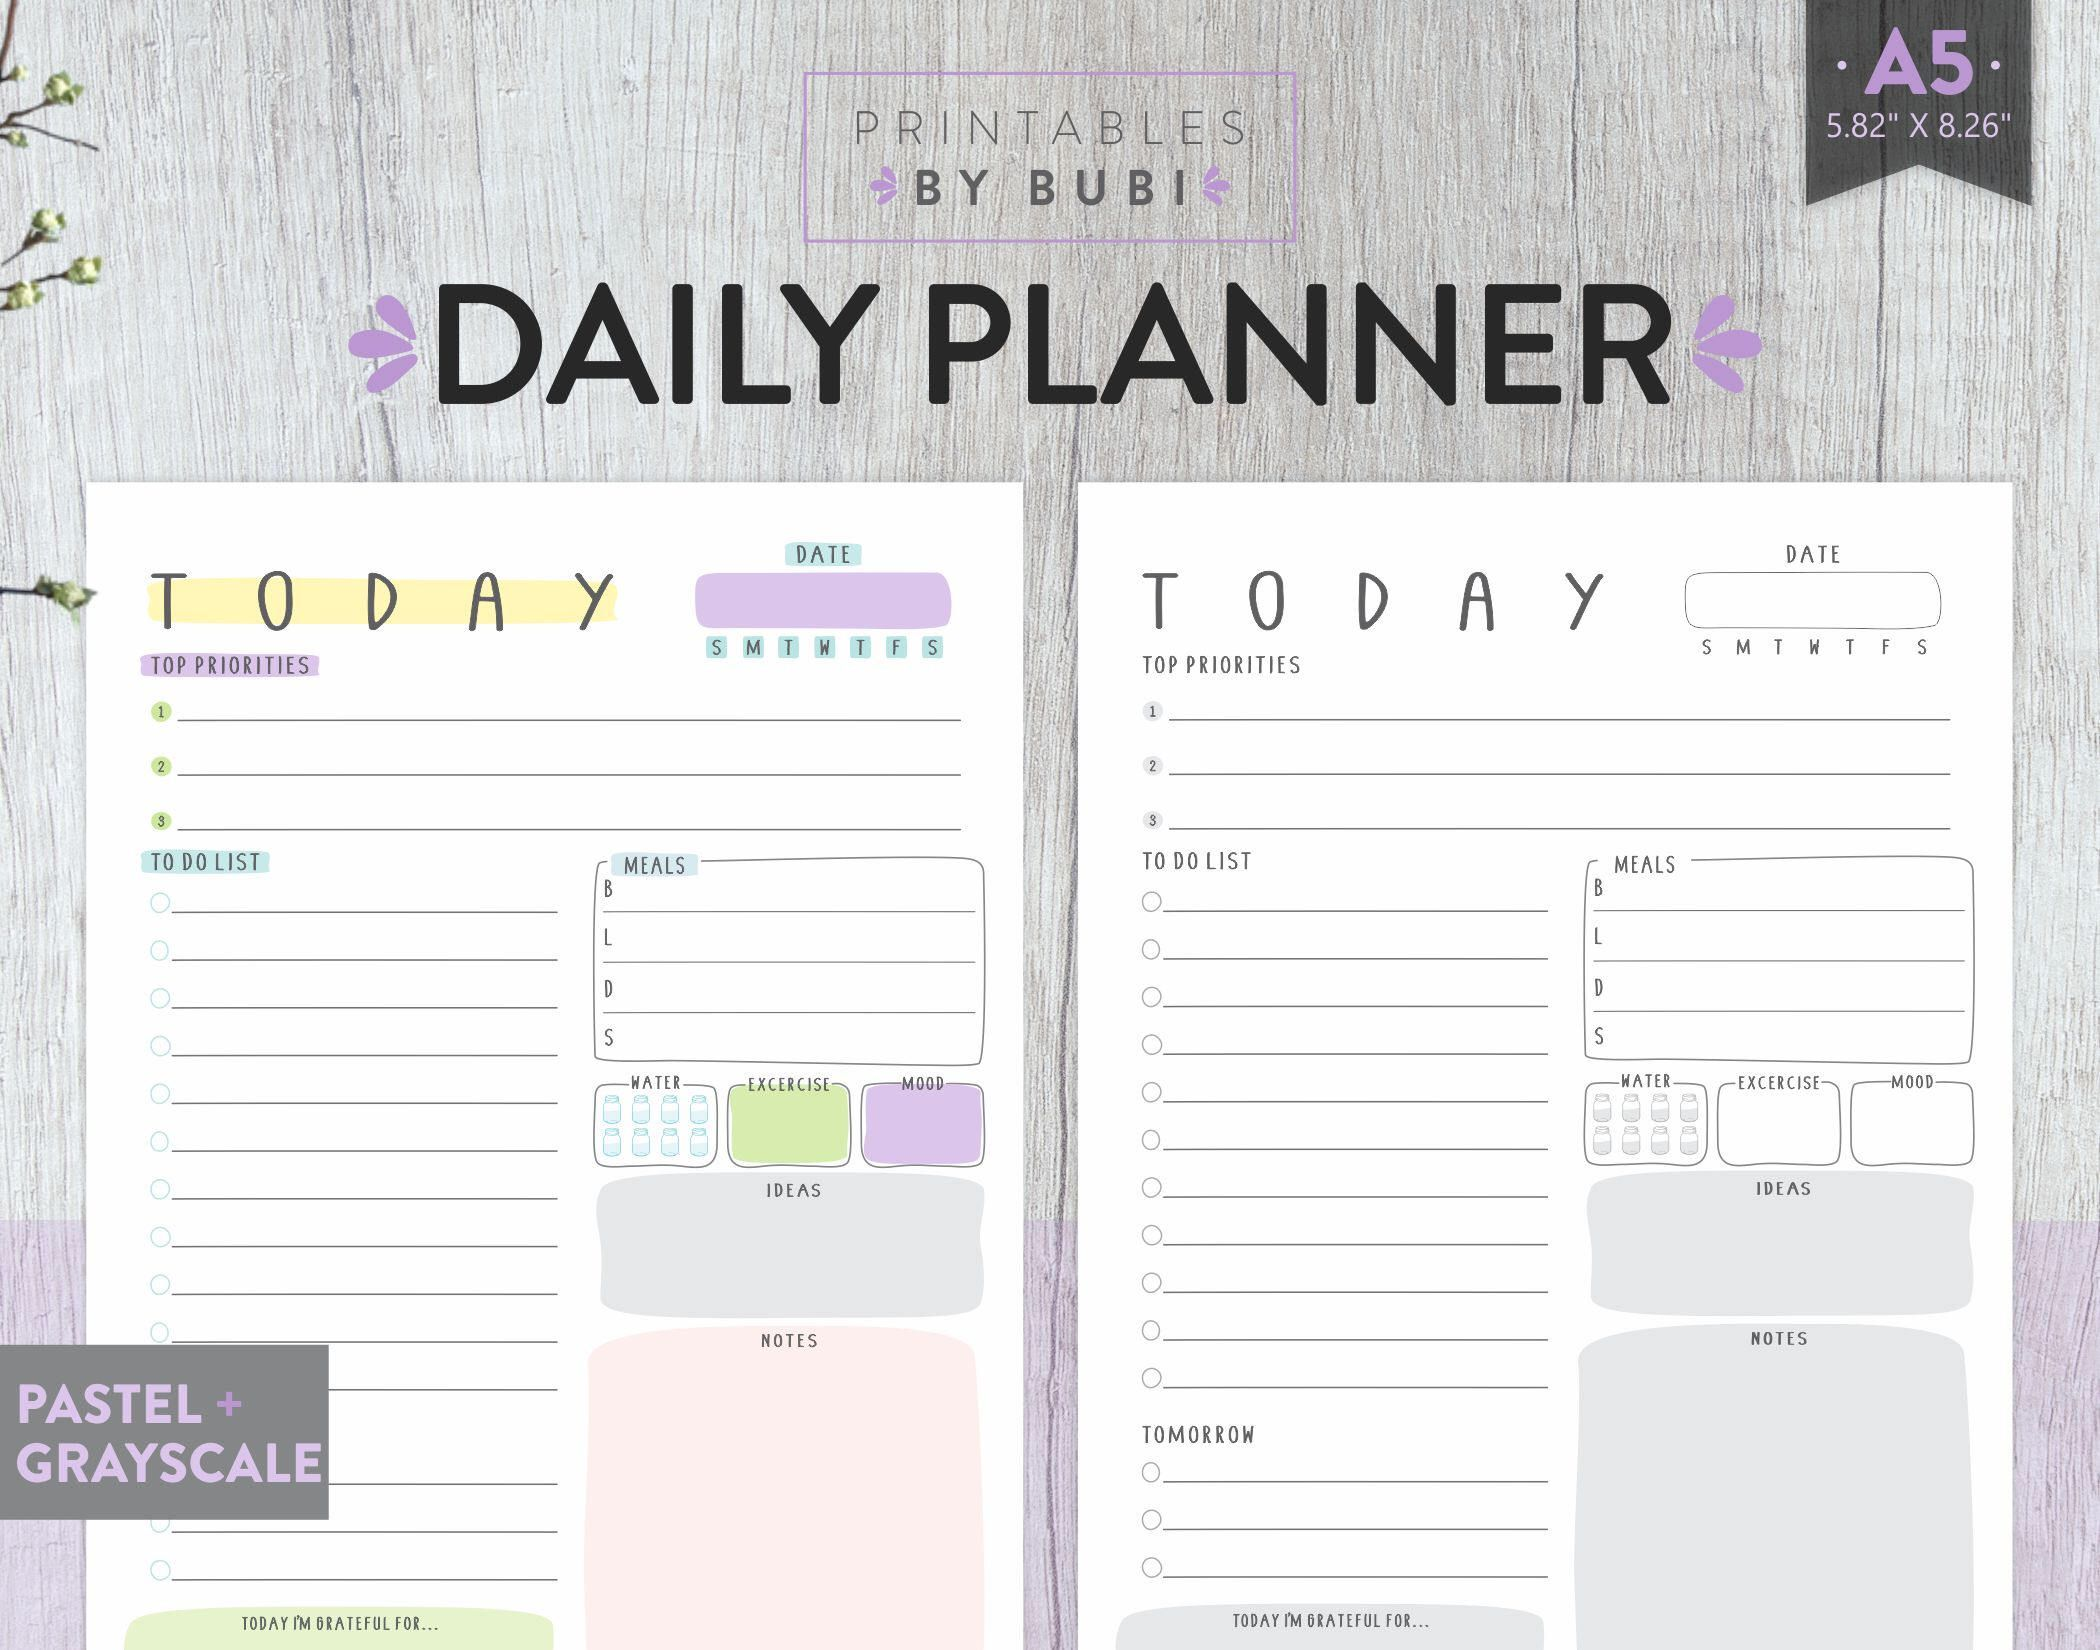 A5 Planner Inserts Daily Planner Printable A5 Filofax A5 Etsy Planner Inserts Printable Daily Planner Printable Daily Planner